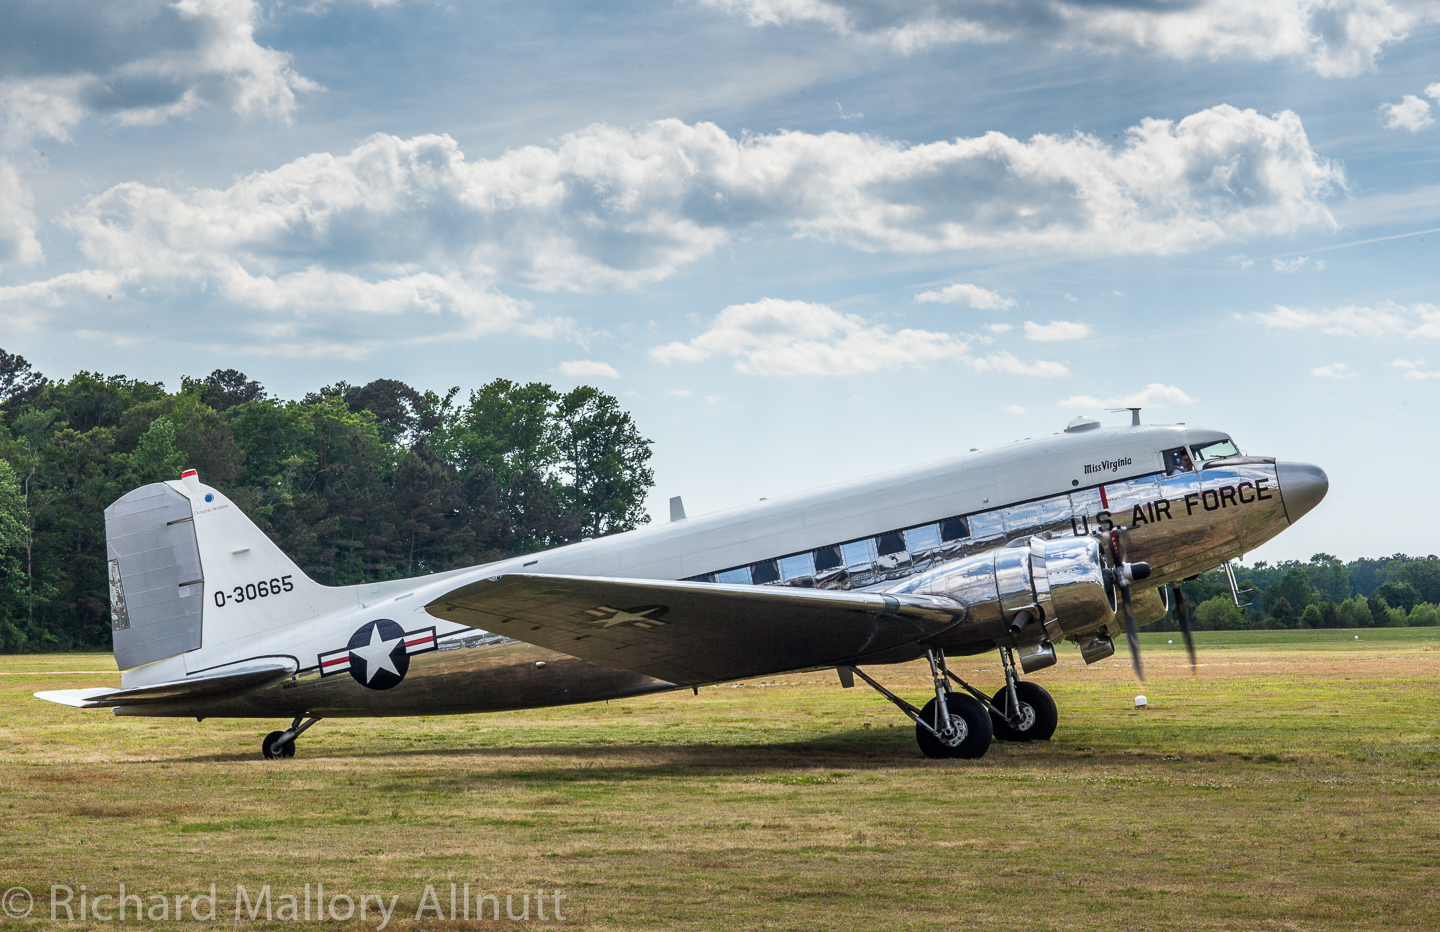 Dynamic Aviation's C-47 participated in the Military Aviation Museum's Warbirds Over the Beach air show in May, 2014. She is a marvelous example of what the company could do with Columbine II. (photo by Richard Mallory Allnutt)